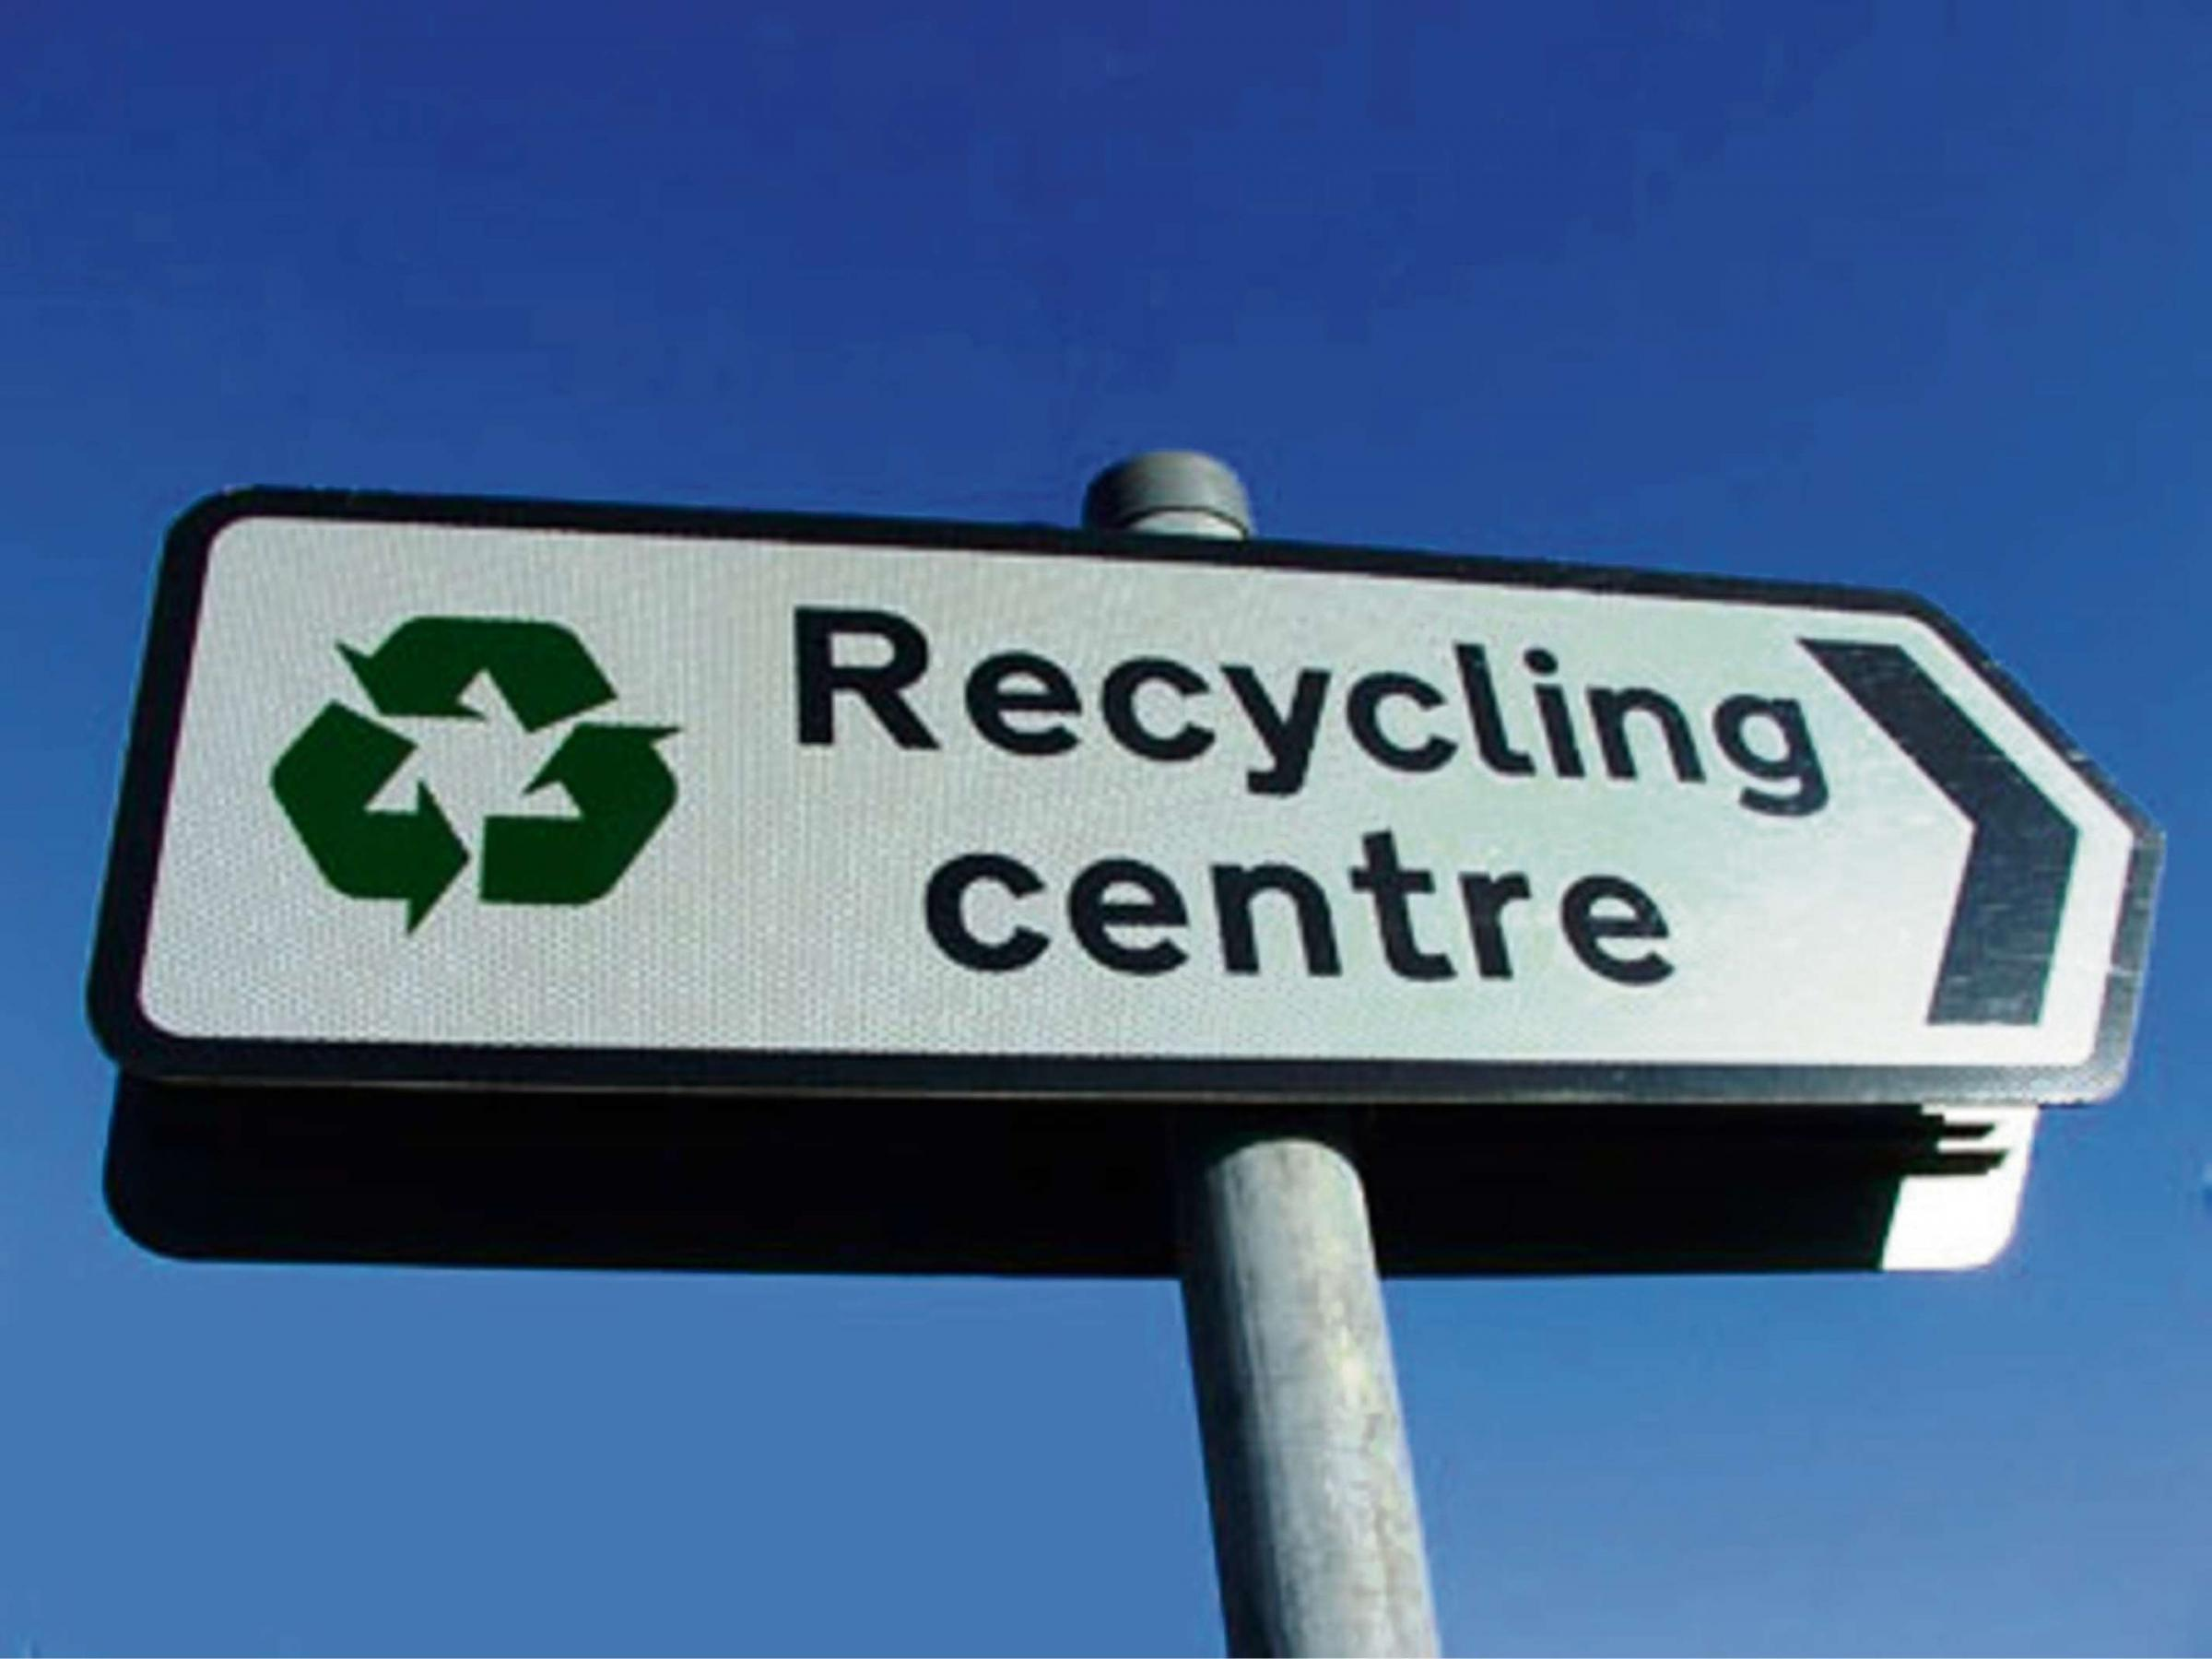 Rochford recycling success leads national TV debate